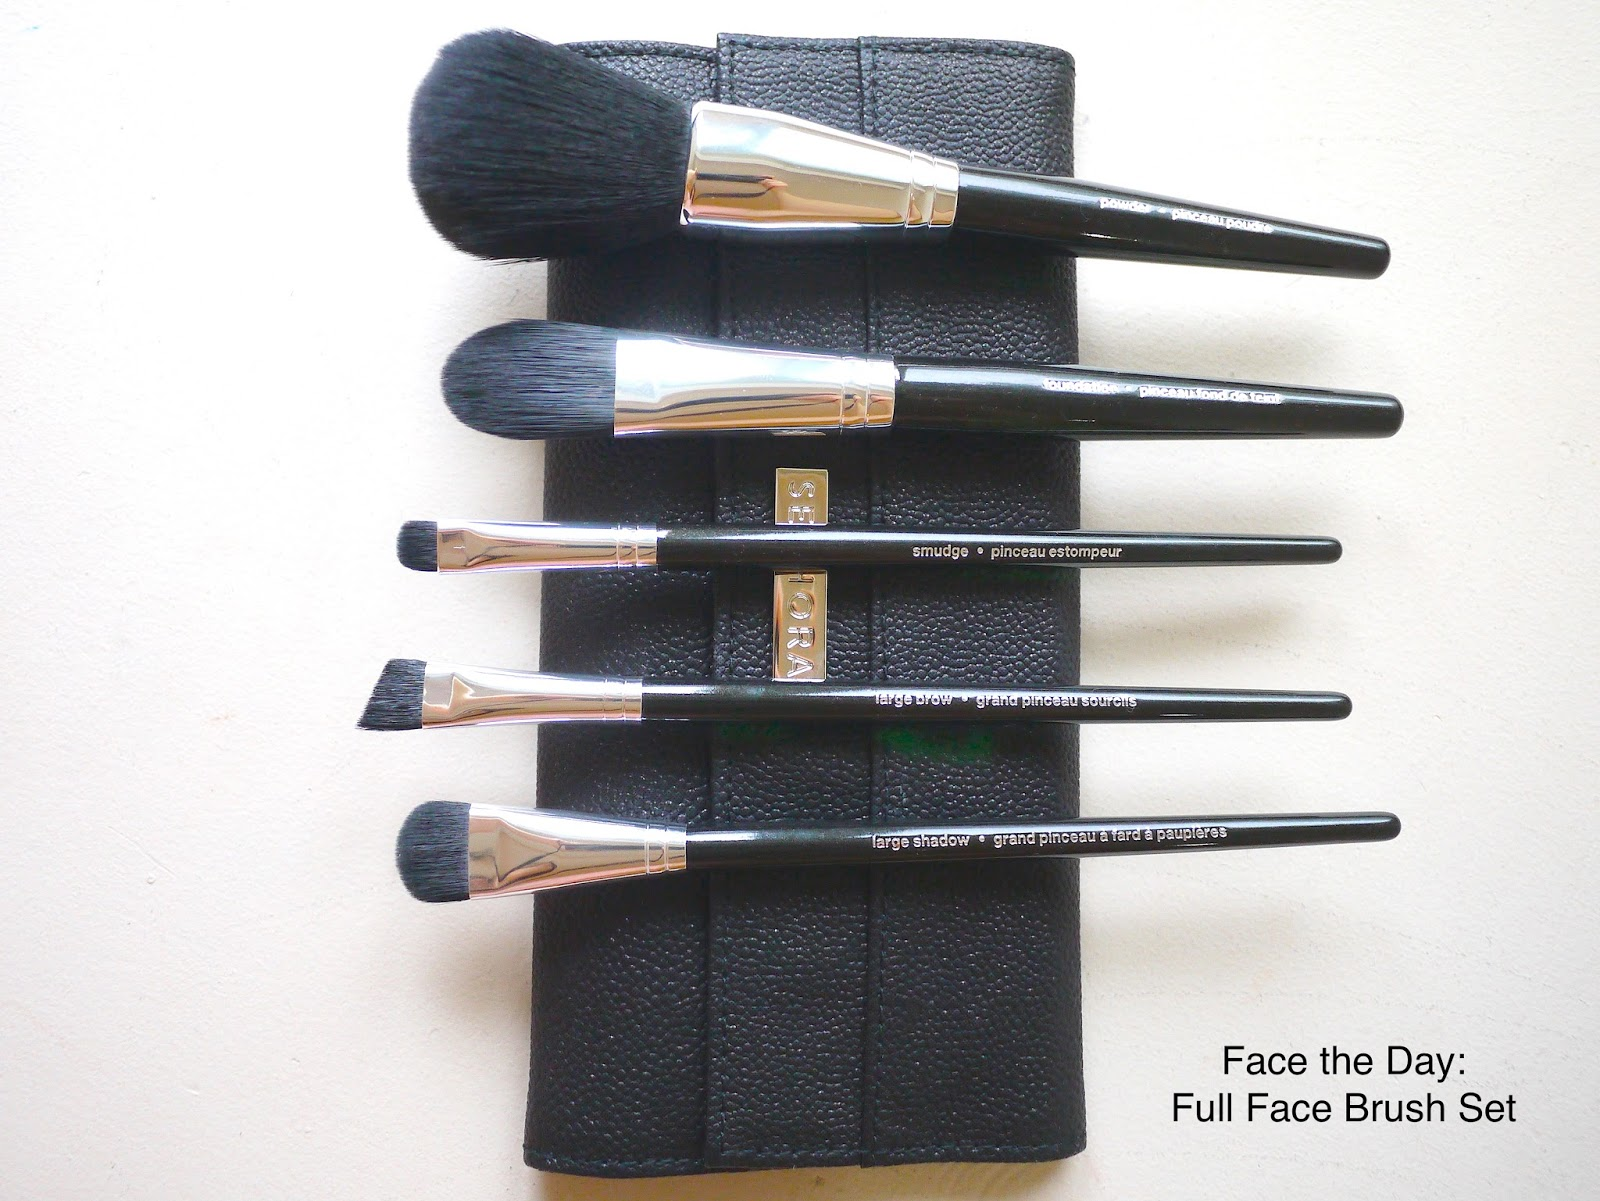 Sephora Face the Day: Full Face Brush Set review